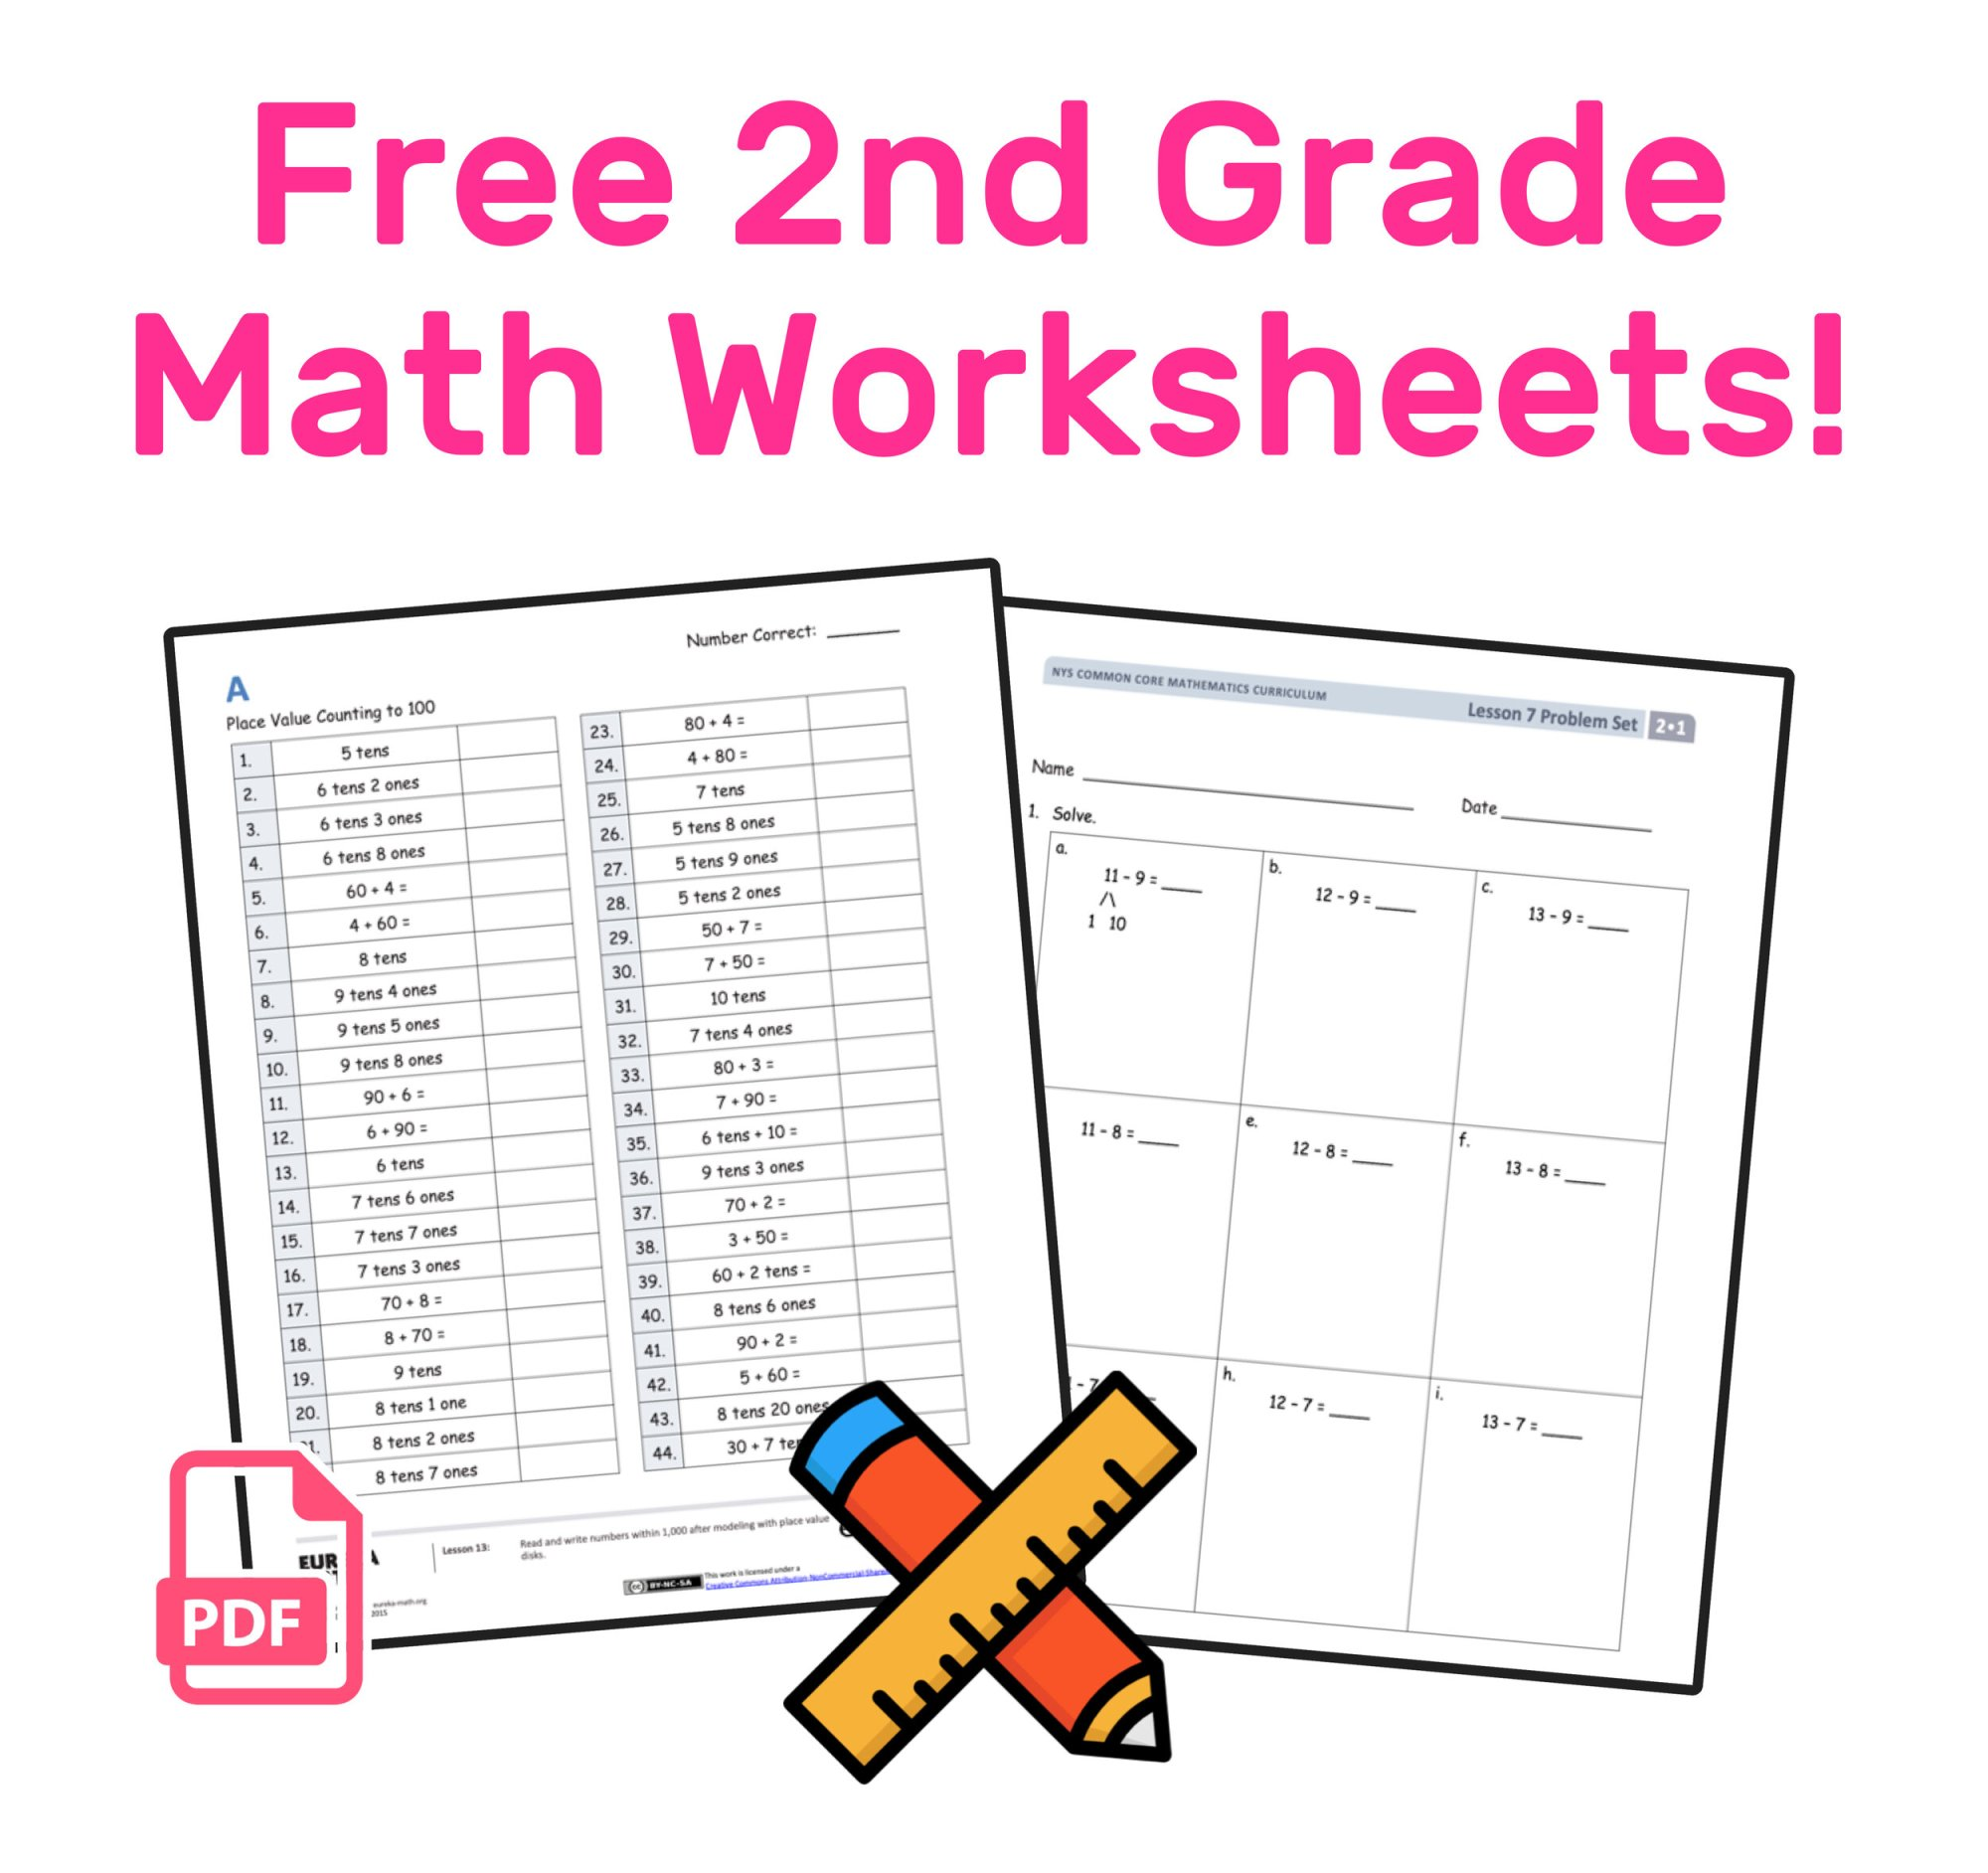 hight resolution of The Best Free 2nd Grade Math Resources: Complete List! — Mashup Math